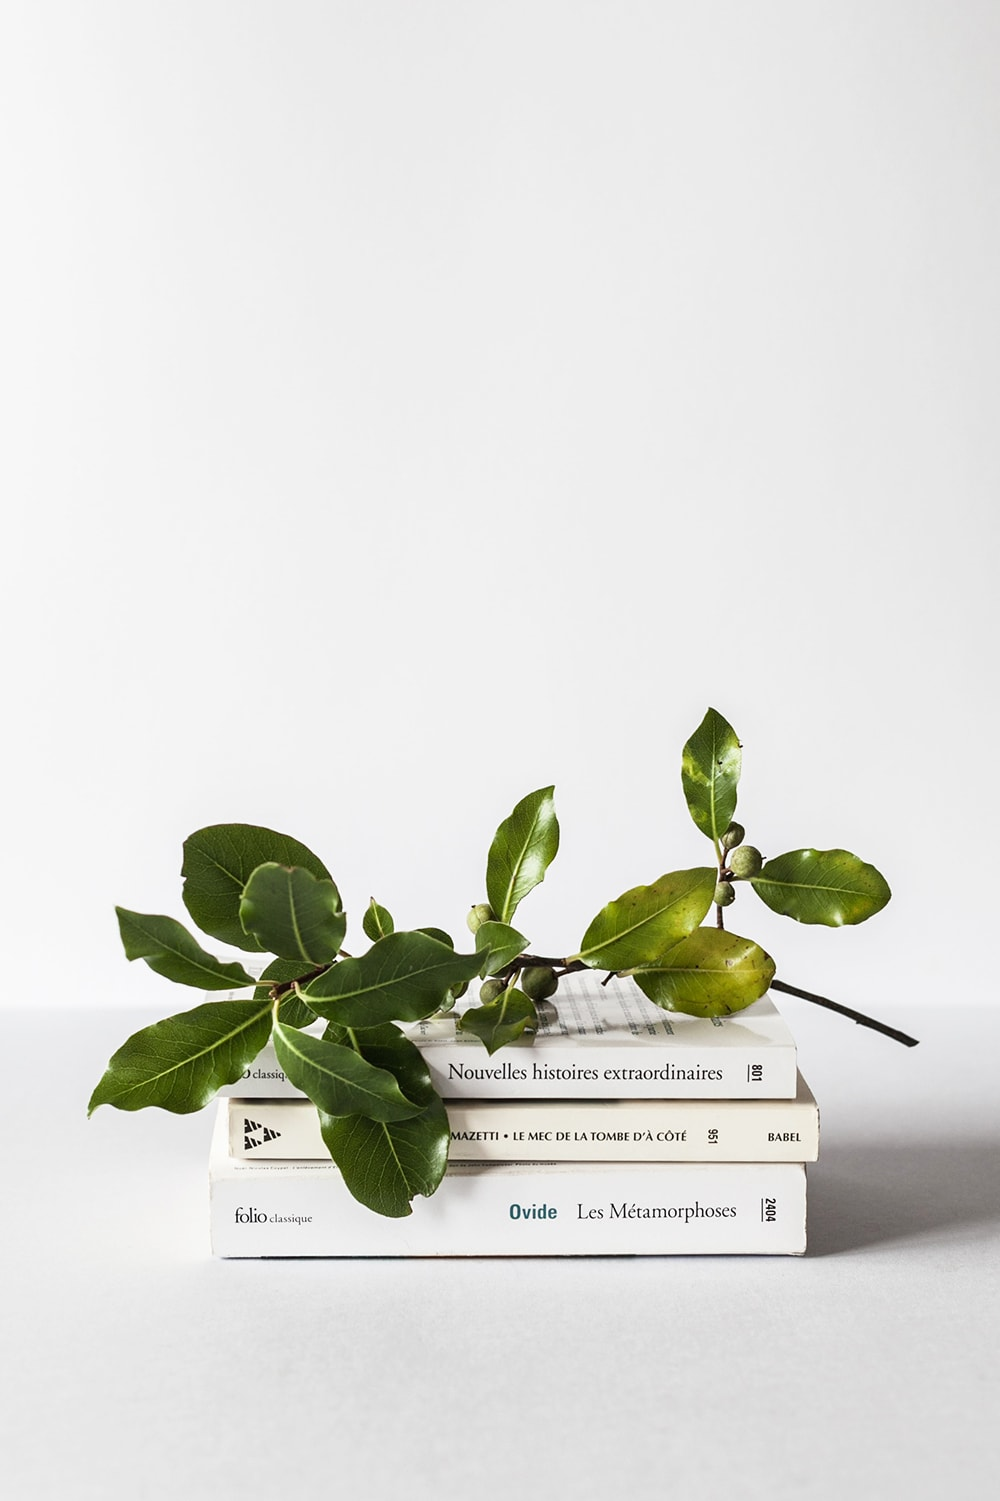 3 books on a white desk with a branch and leaves